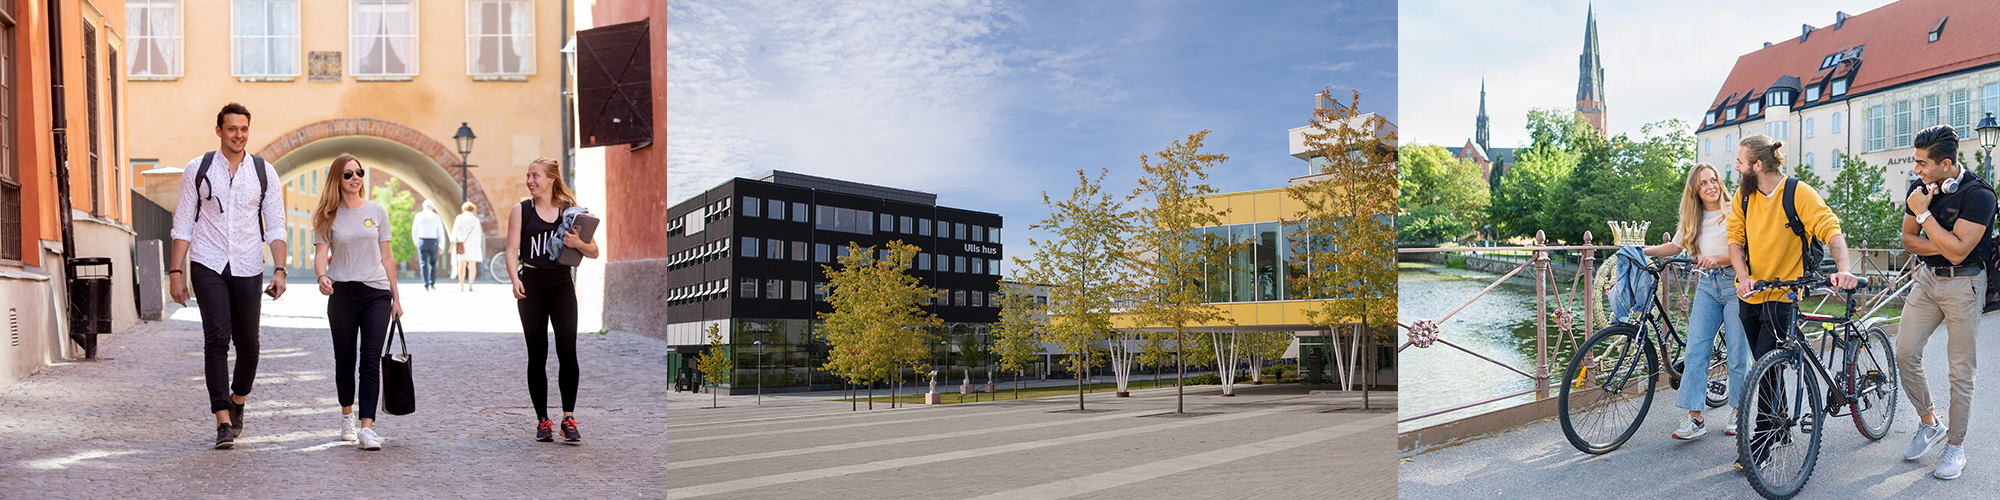 Three pictures. Some people are walking on the street. A modern black building and another yellow building. Some people are crossing over a bridge.